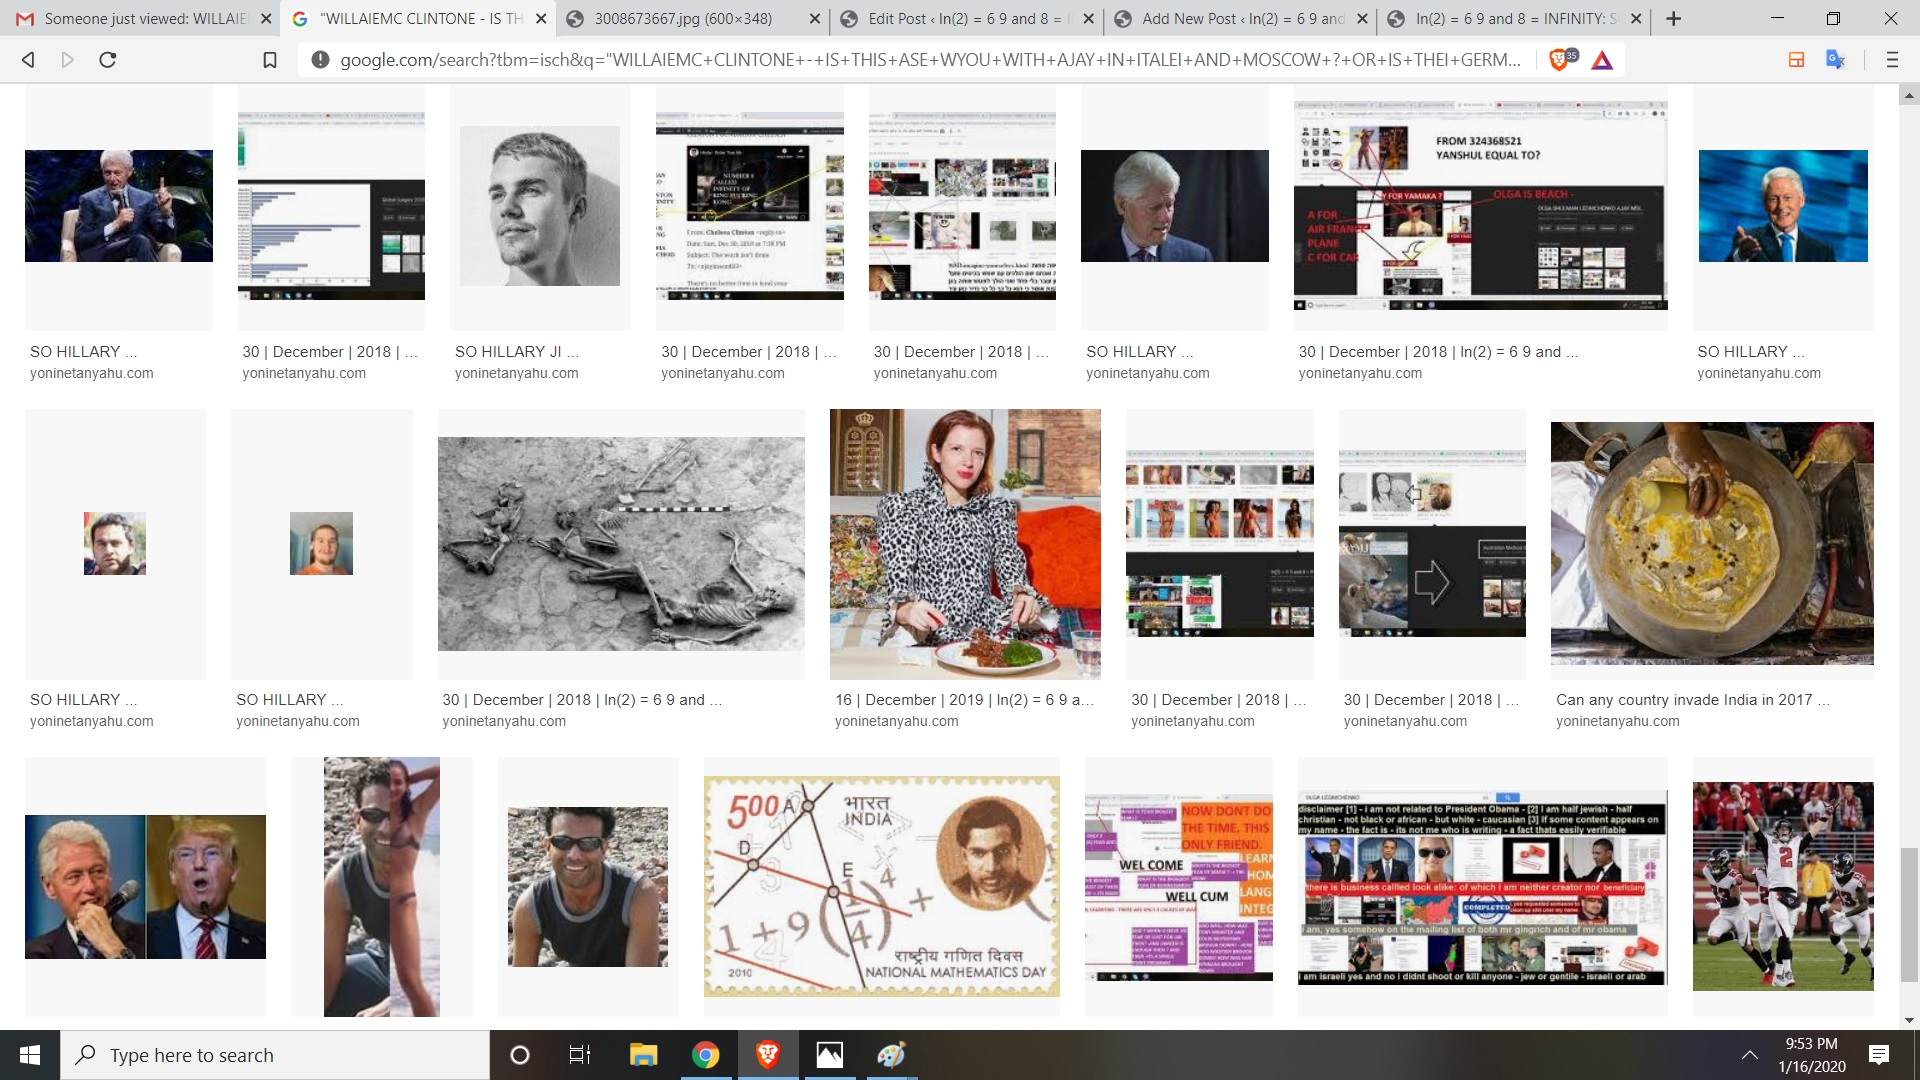 MISHRA CLINTON LOCATUONS - ITALY OR MSCOW OR GERMANY OR LONDON OR RUSISA OR 06 PLUS 33 OR PLUS 972 OR INDIANS S WHAT SHULD I CAL THIS DINENR WWITH SOEONE PAGE